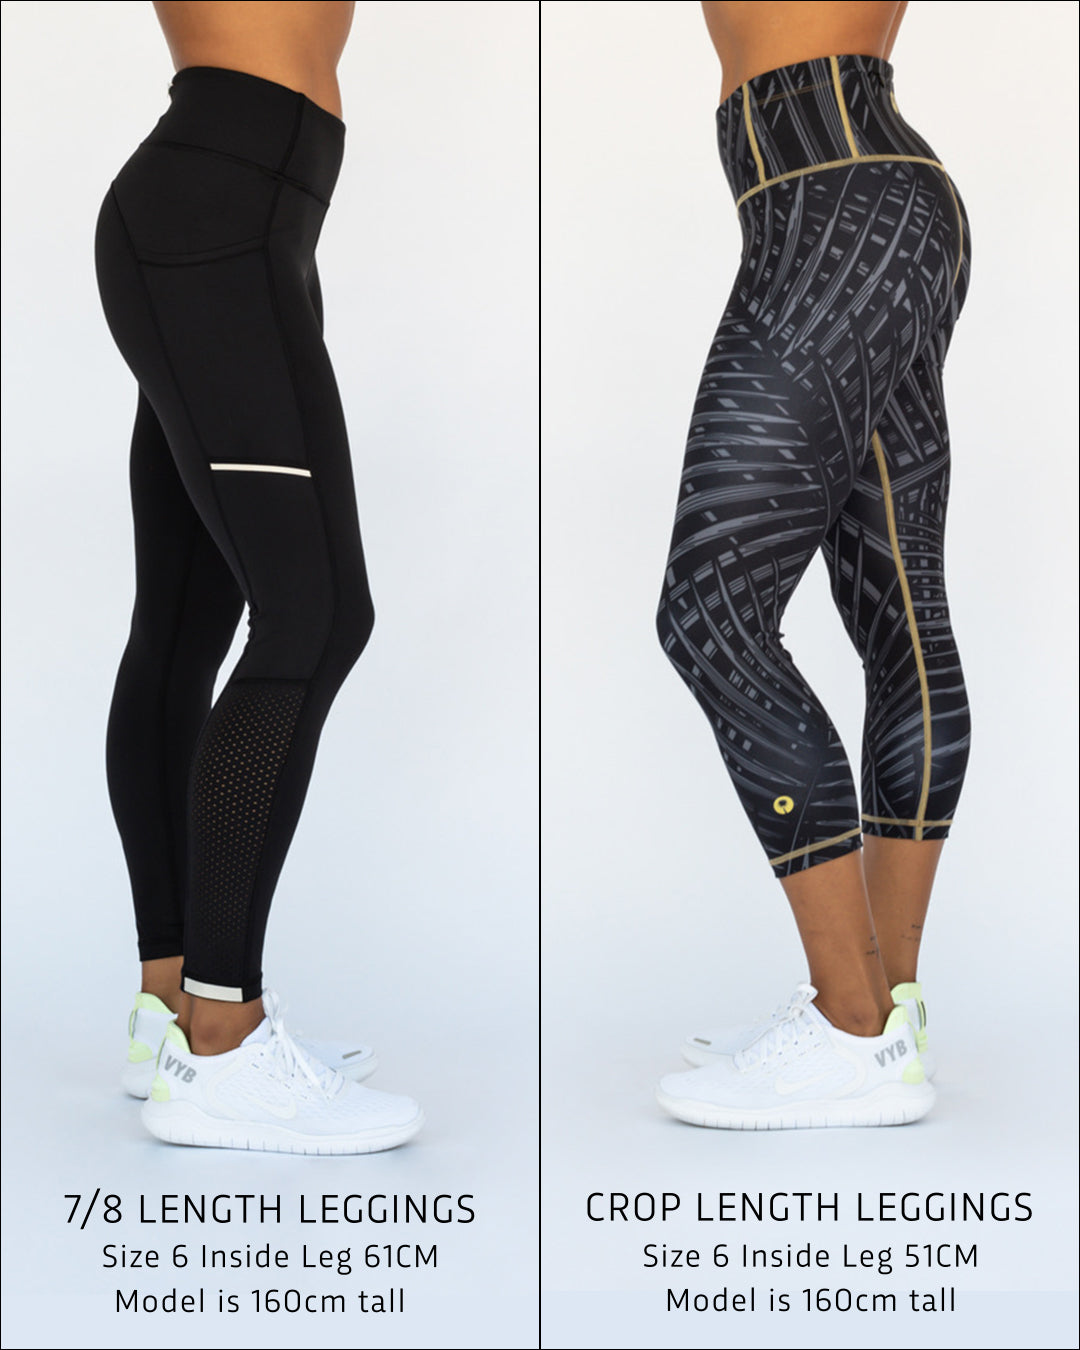 VYB ACTIVE LEGGING GUIDE